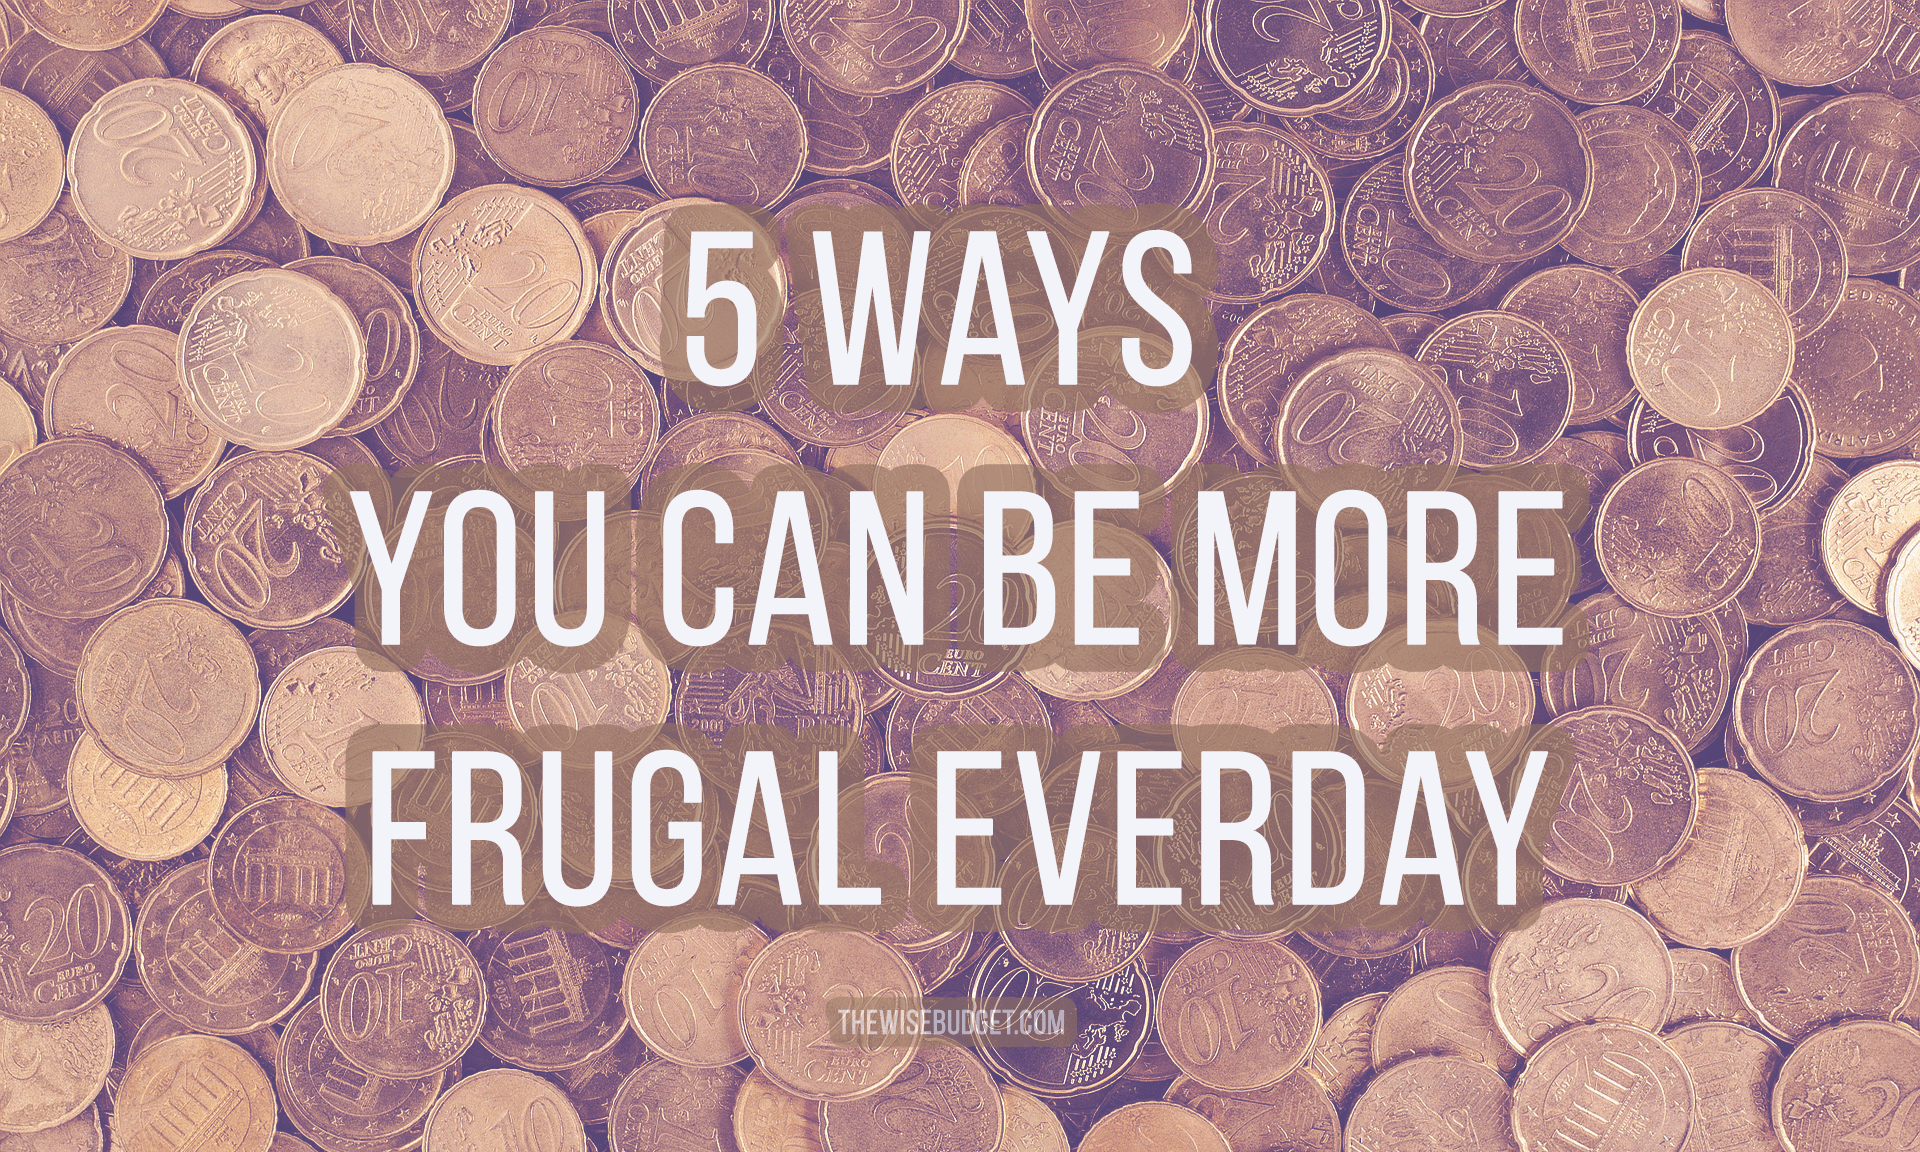 thewisebudget 5 ways you can be more frugal everyday